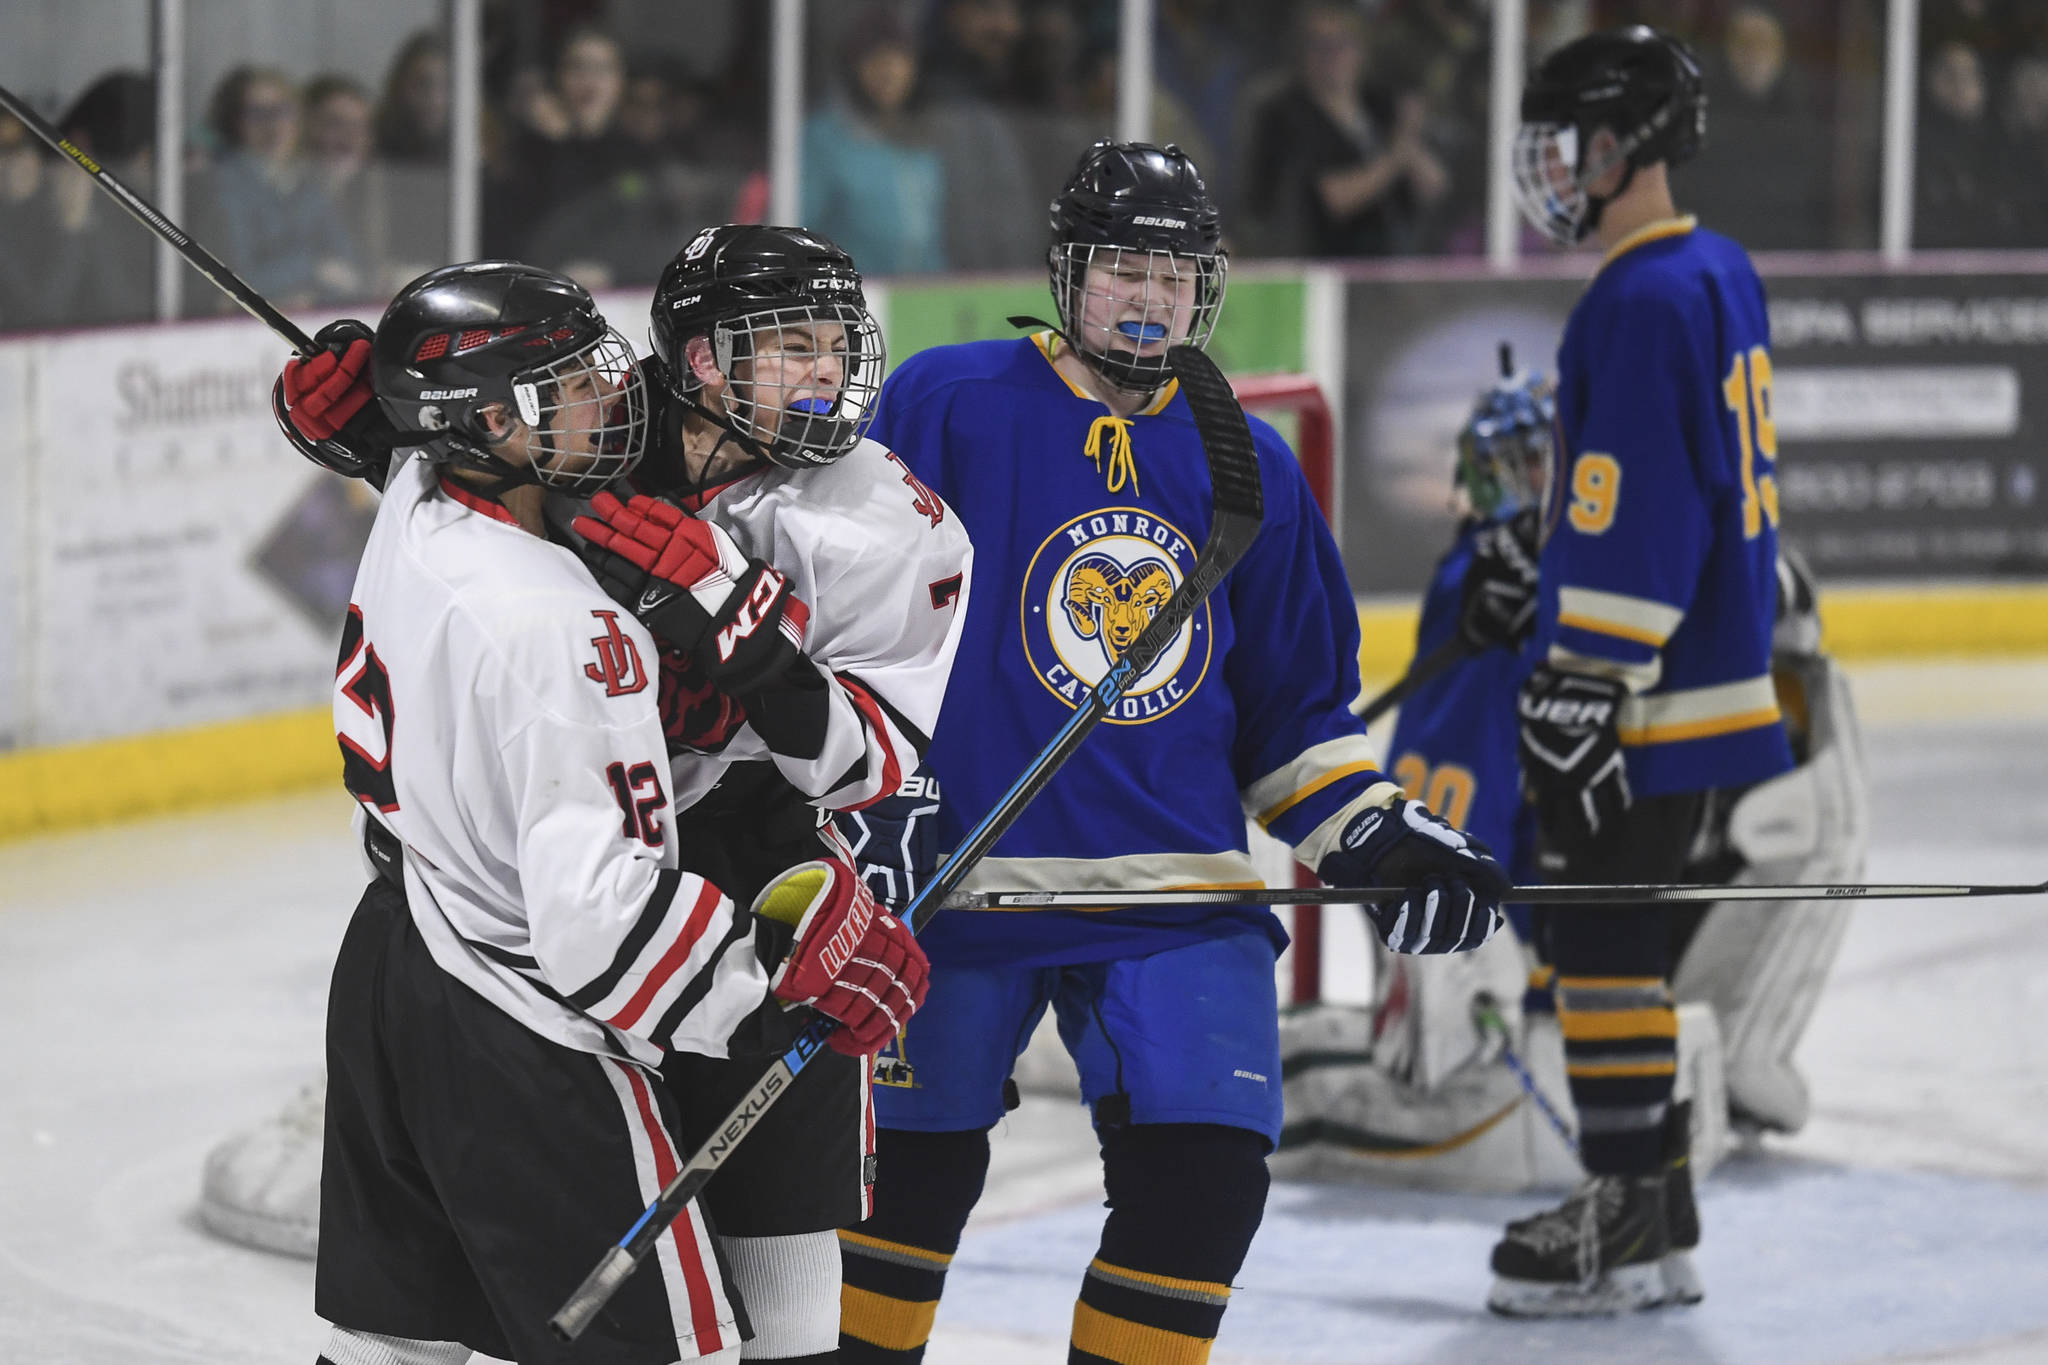 Juneau-Douglas' Fin Shibler, second from left, celebrates his third period goal with teammate Joey Meier against Monroe Catholic at the Treadwell Arena on Friday, Nov. 15, 2019. JDHS won 13-0. (Michael Penn | Juneau Empire)